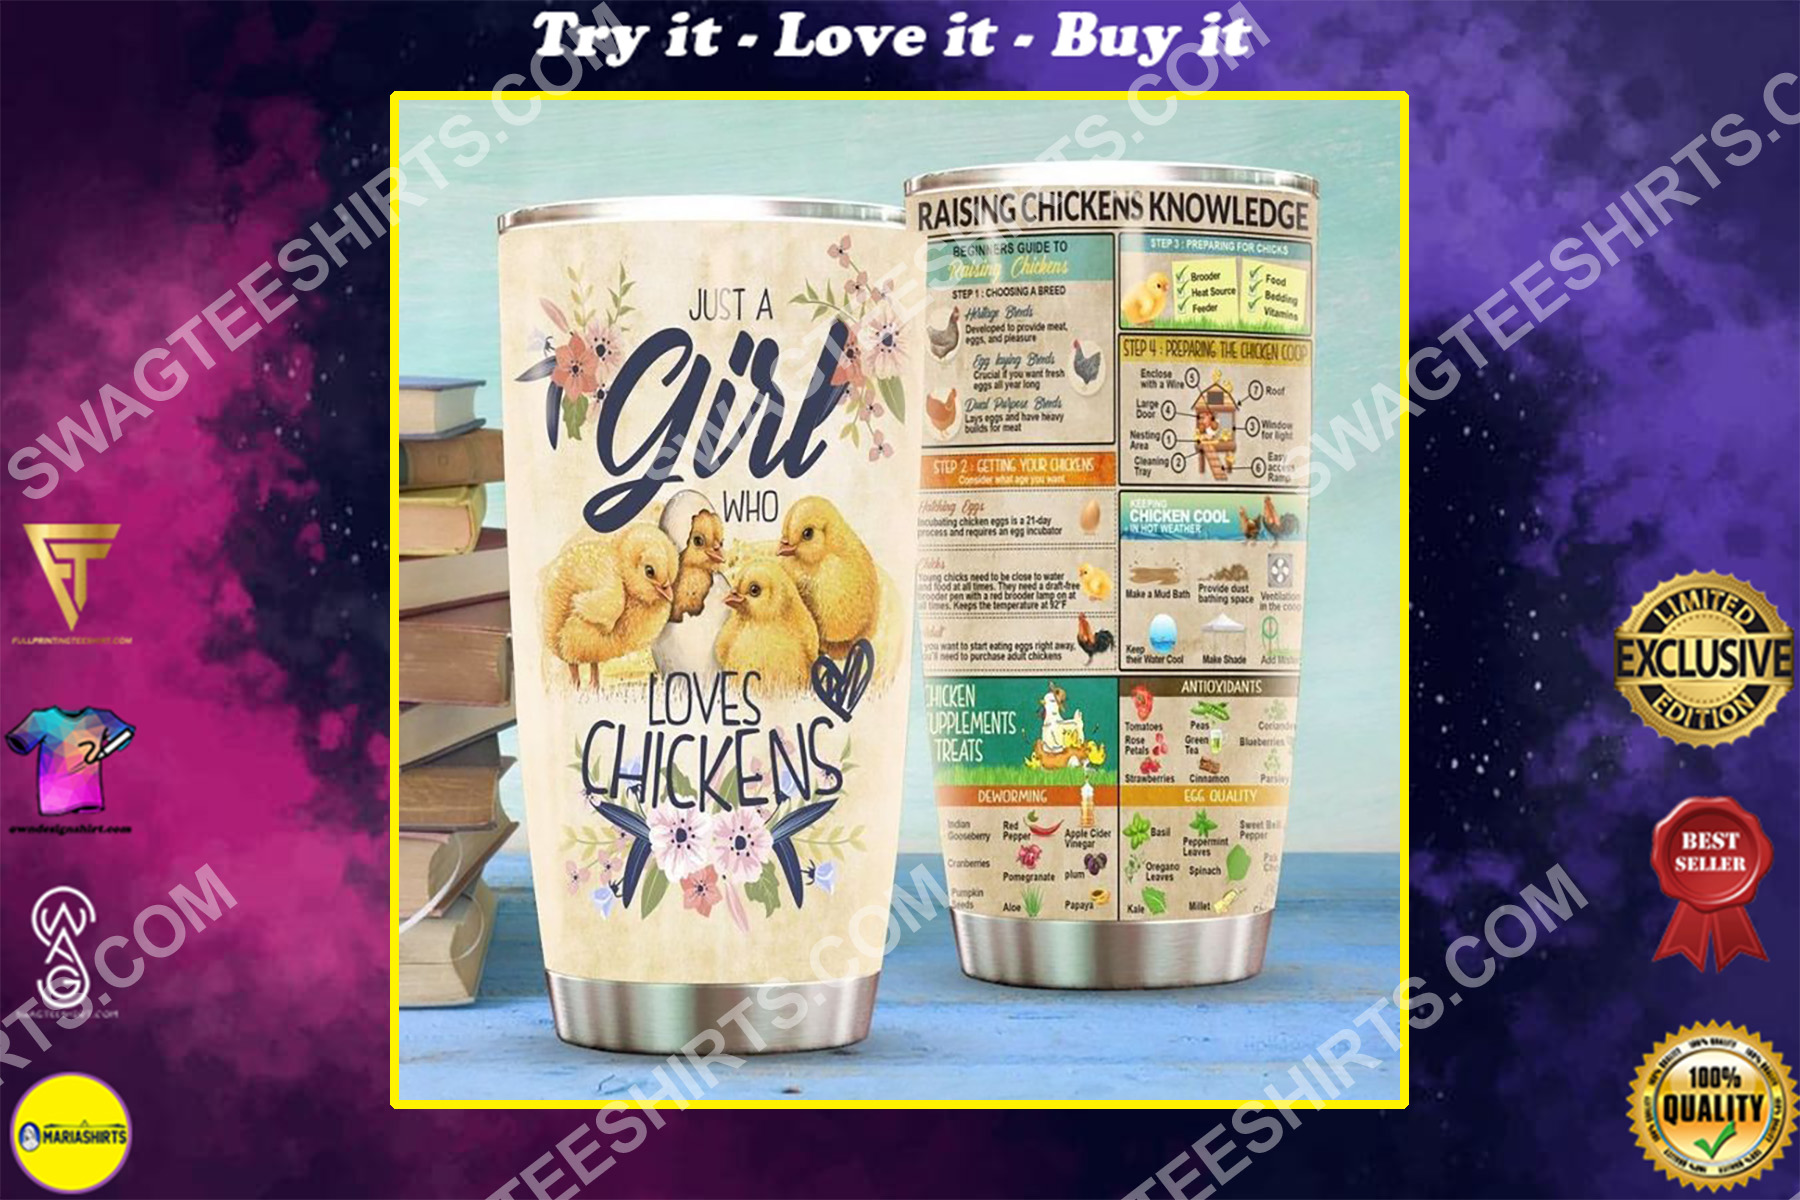 raising chickens knowledge all over printed stainless steel tumbler